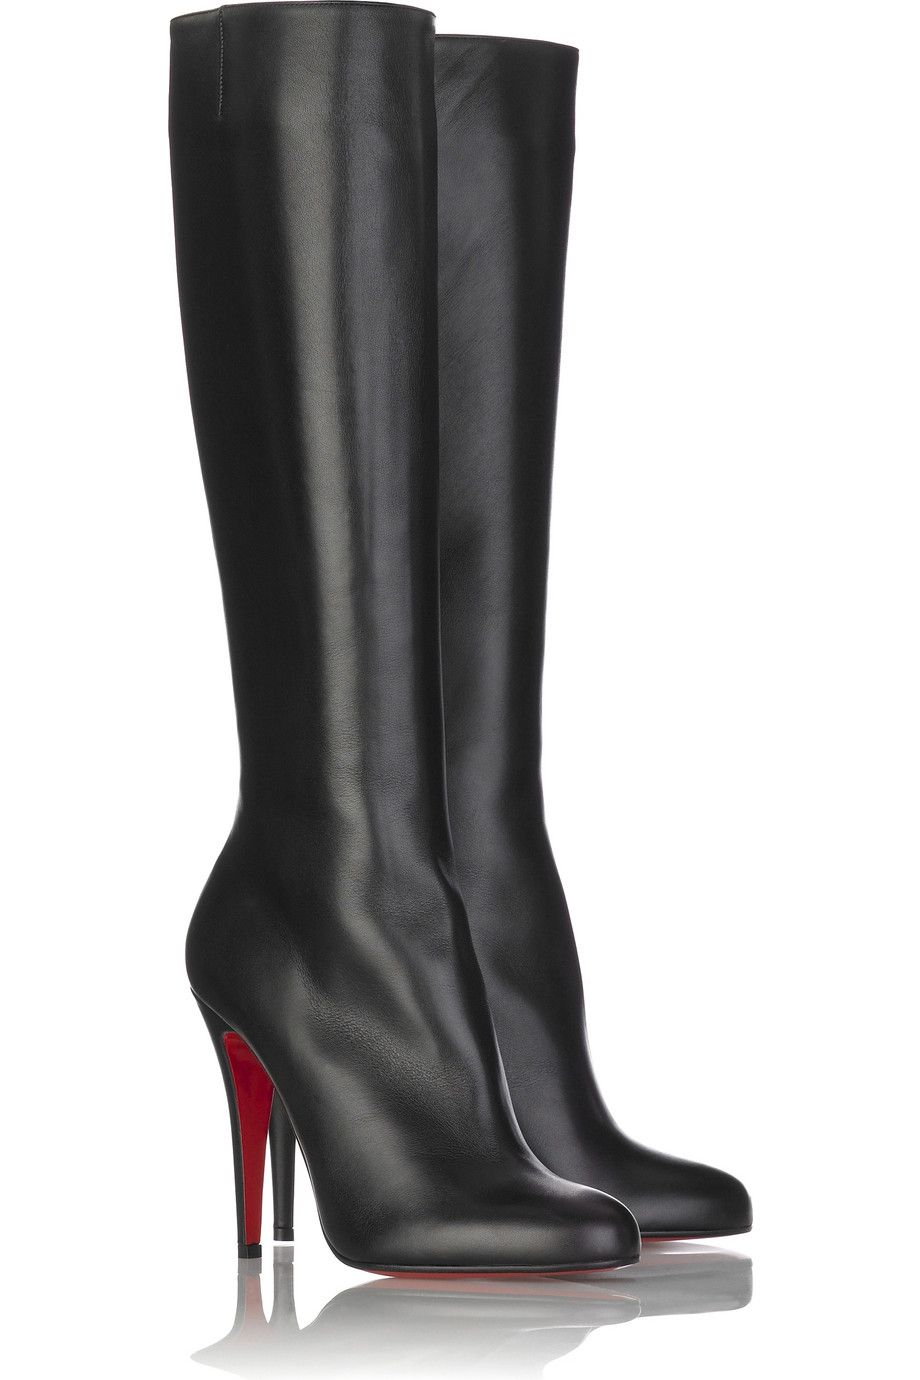 Babel Platform Boots Black cheap louboutinshoes christian louboutin Fast Worldwide Delivery